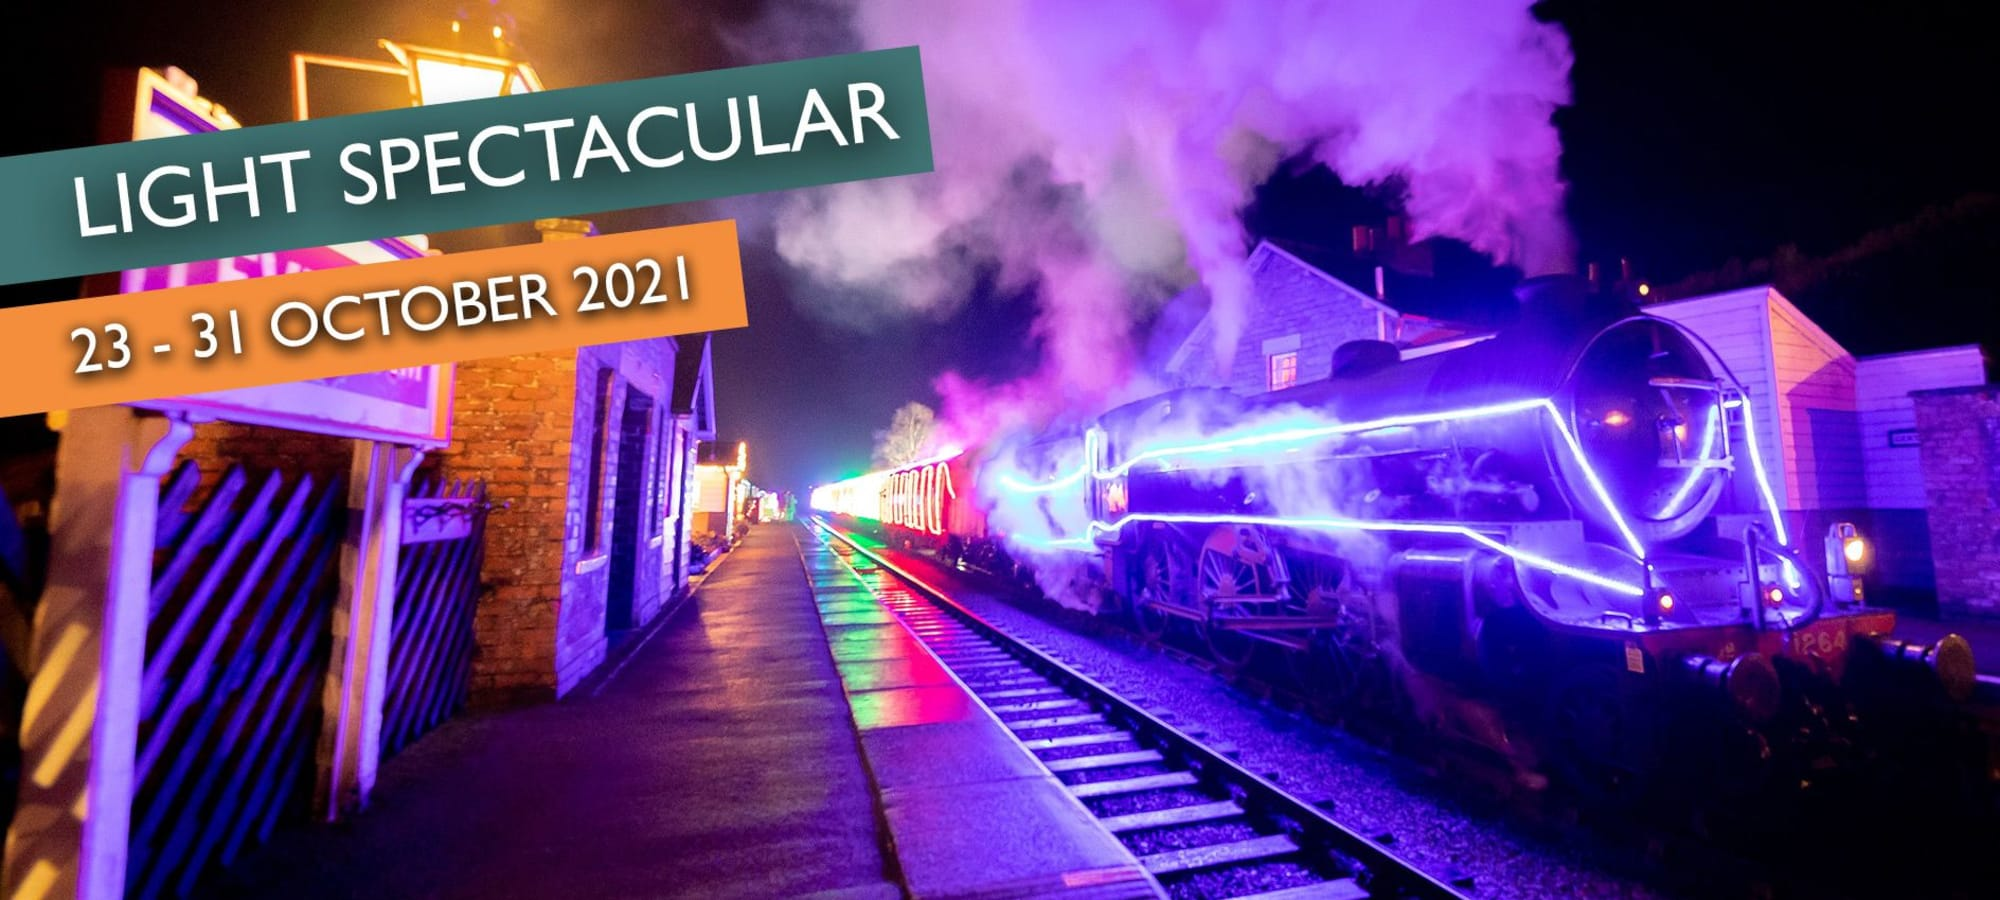 Light Spectacular with North Yorkshire Moors Railway